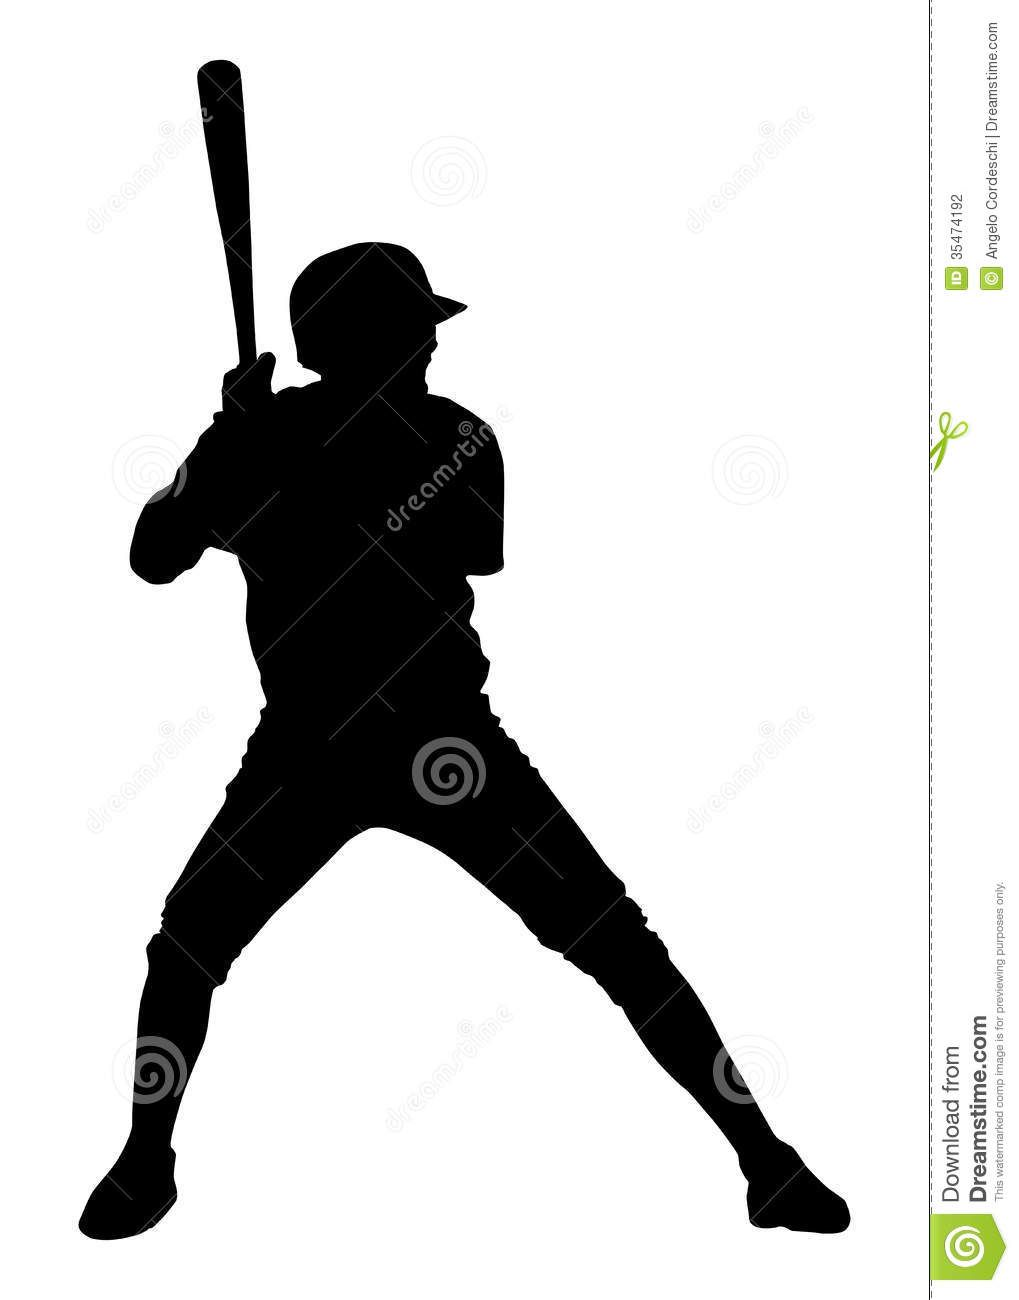 baseball decal vector google search sport silhouettes vectors rh pinterest com Baseball Batter's Box Baseball Player Batter Clip Art